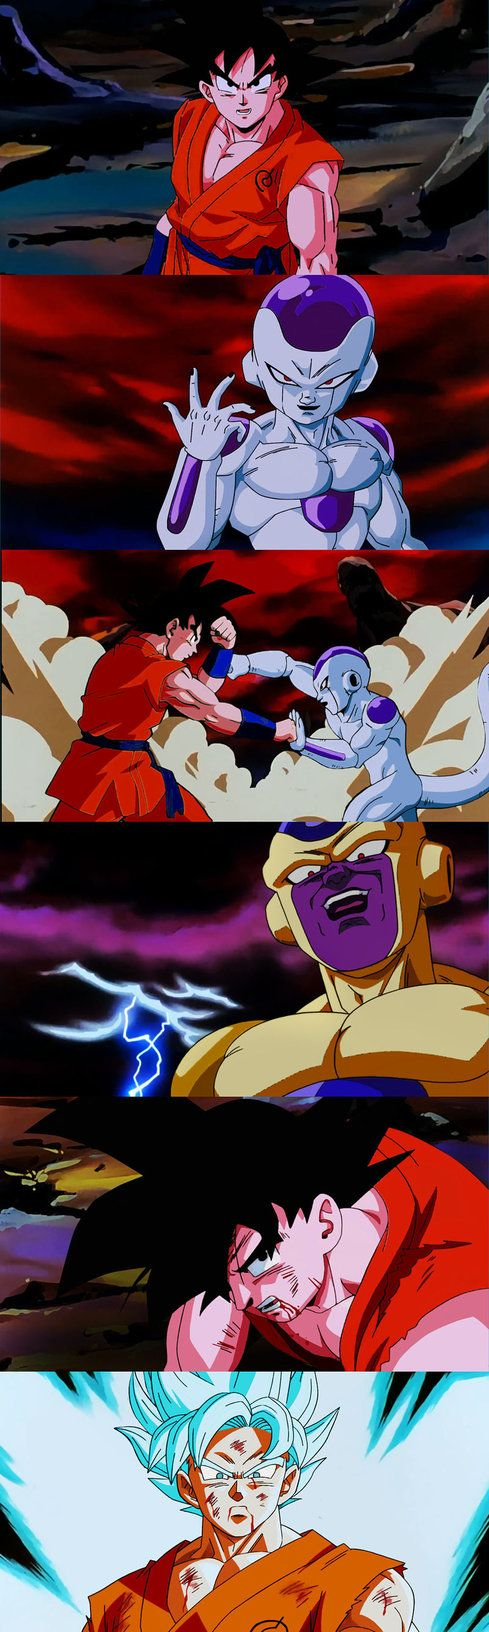 Dragon Ball Z Resurrection F redone in classic DBZ style! Created by: Salvamakoto on Deviantart! #SonGokuKakarot